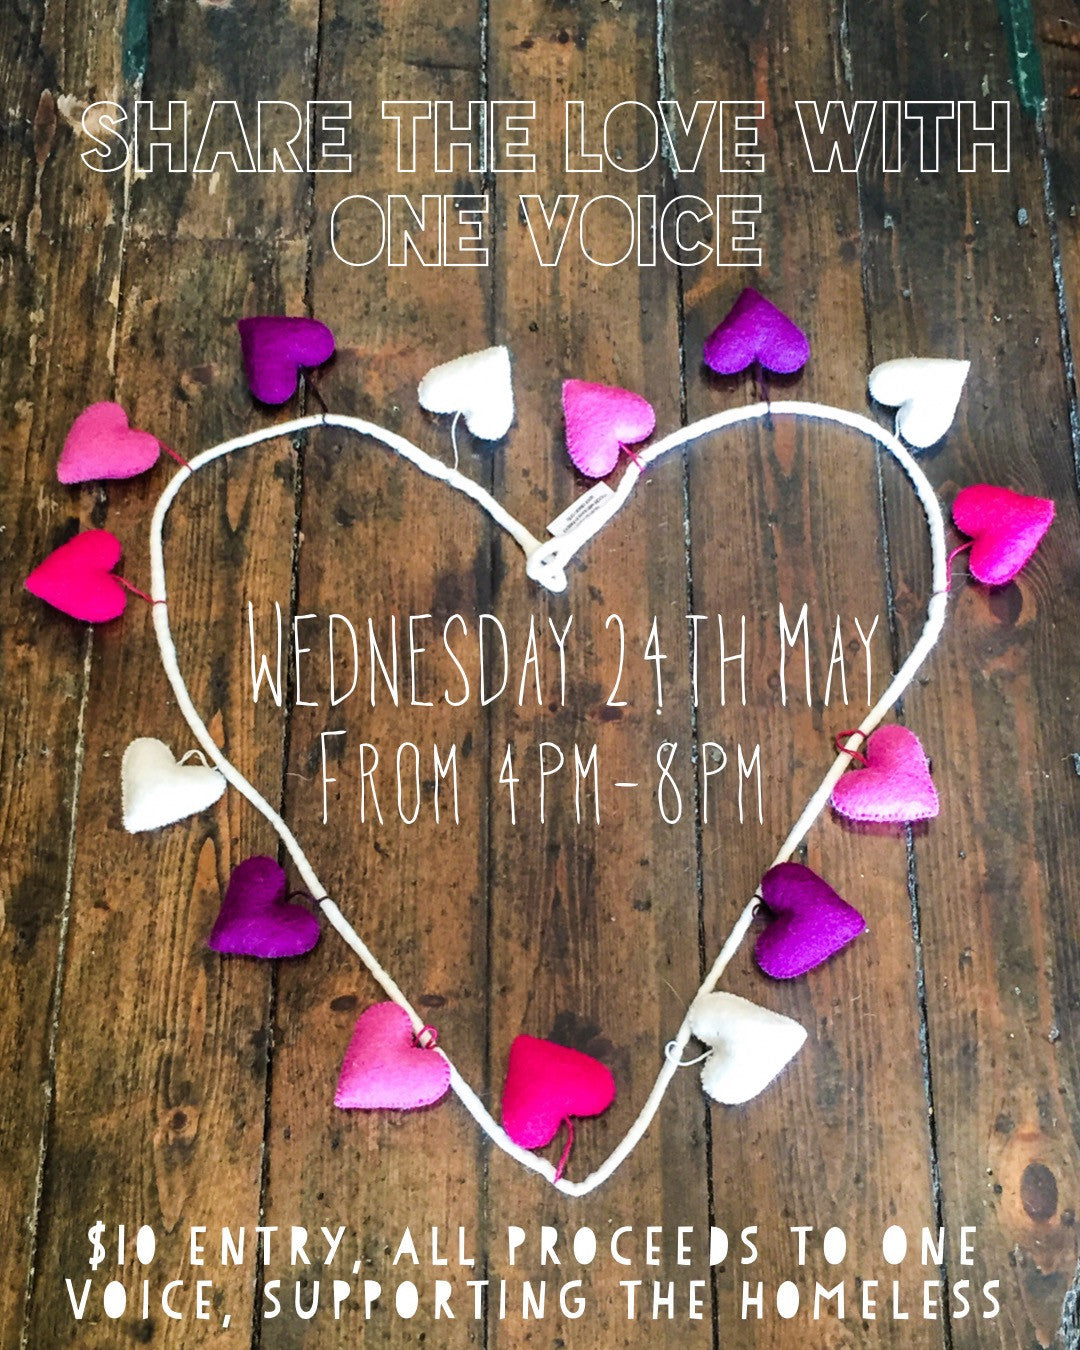 One Voice Fundraiser 24th May 2017 (4-8pm)